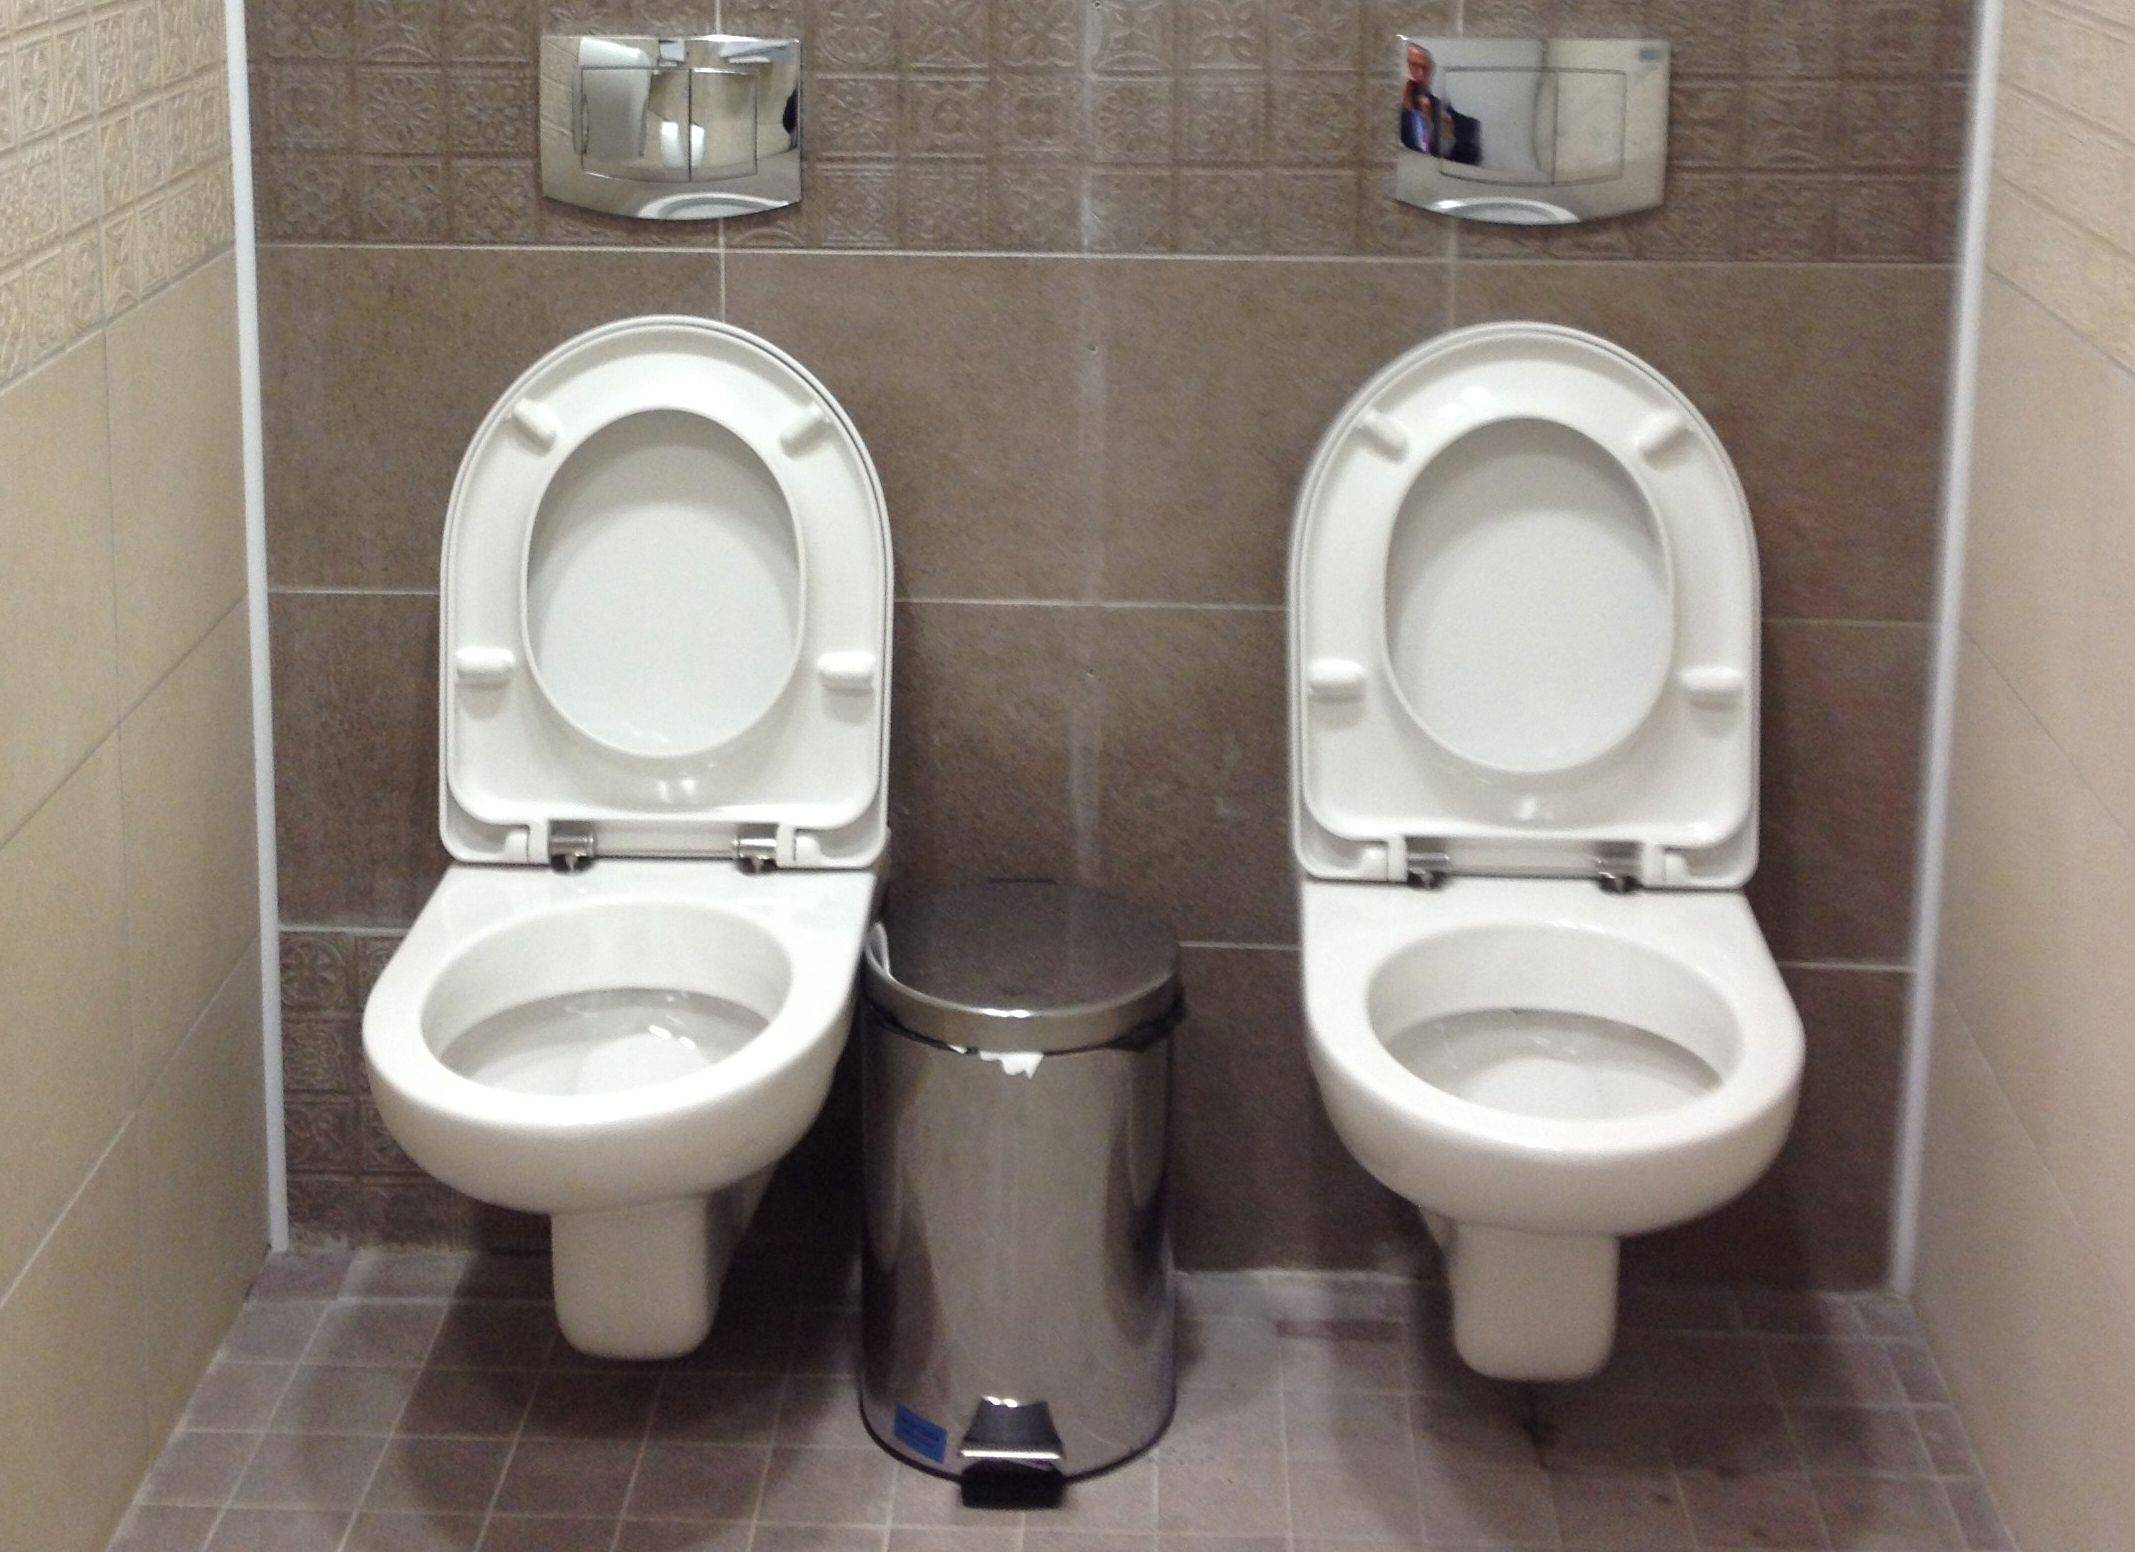 Westerners may be surprised at just how cozy Russians can get. These are toilets at the cross-country skiing and biathlon center for the Sochi Olympics.